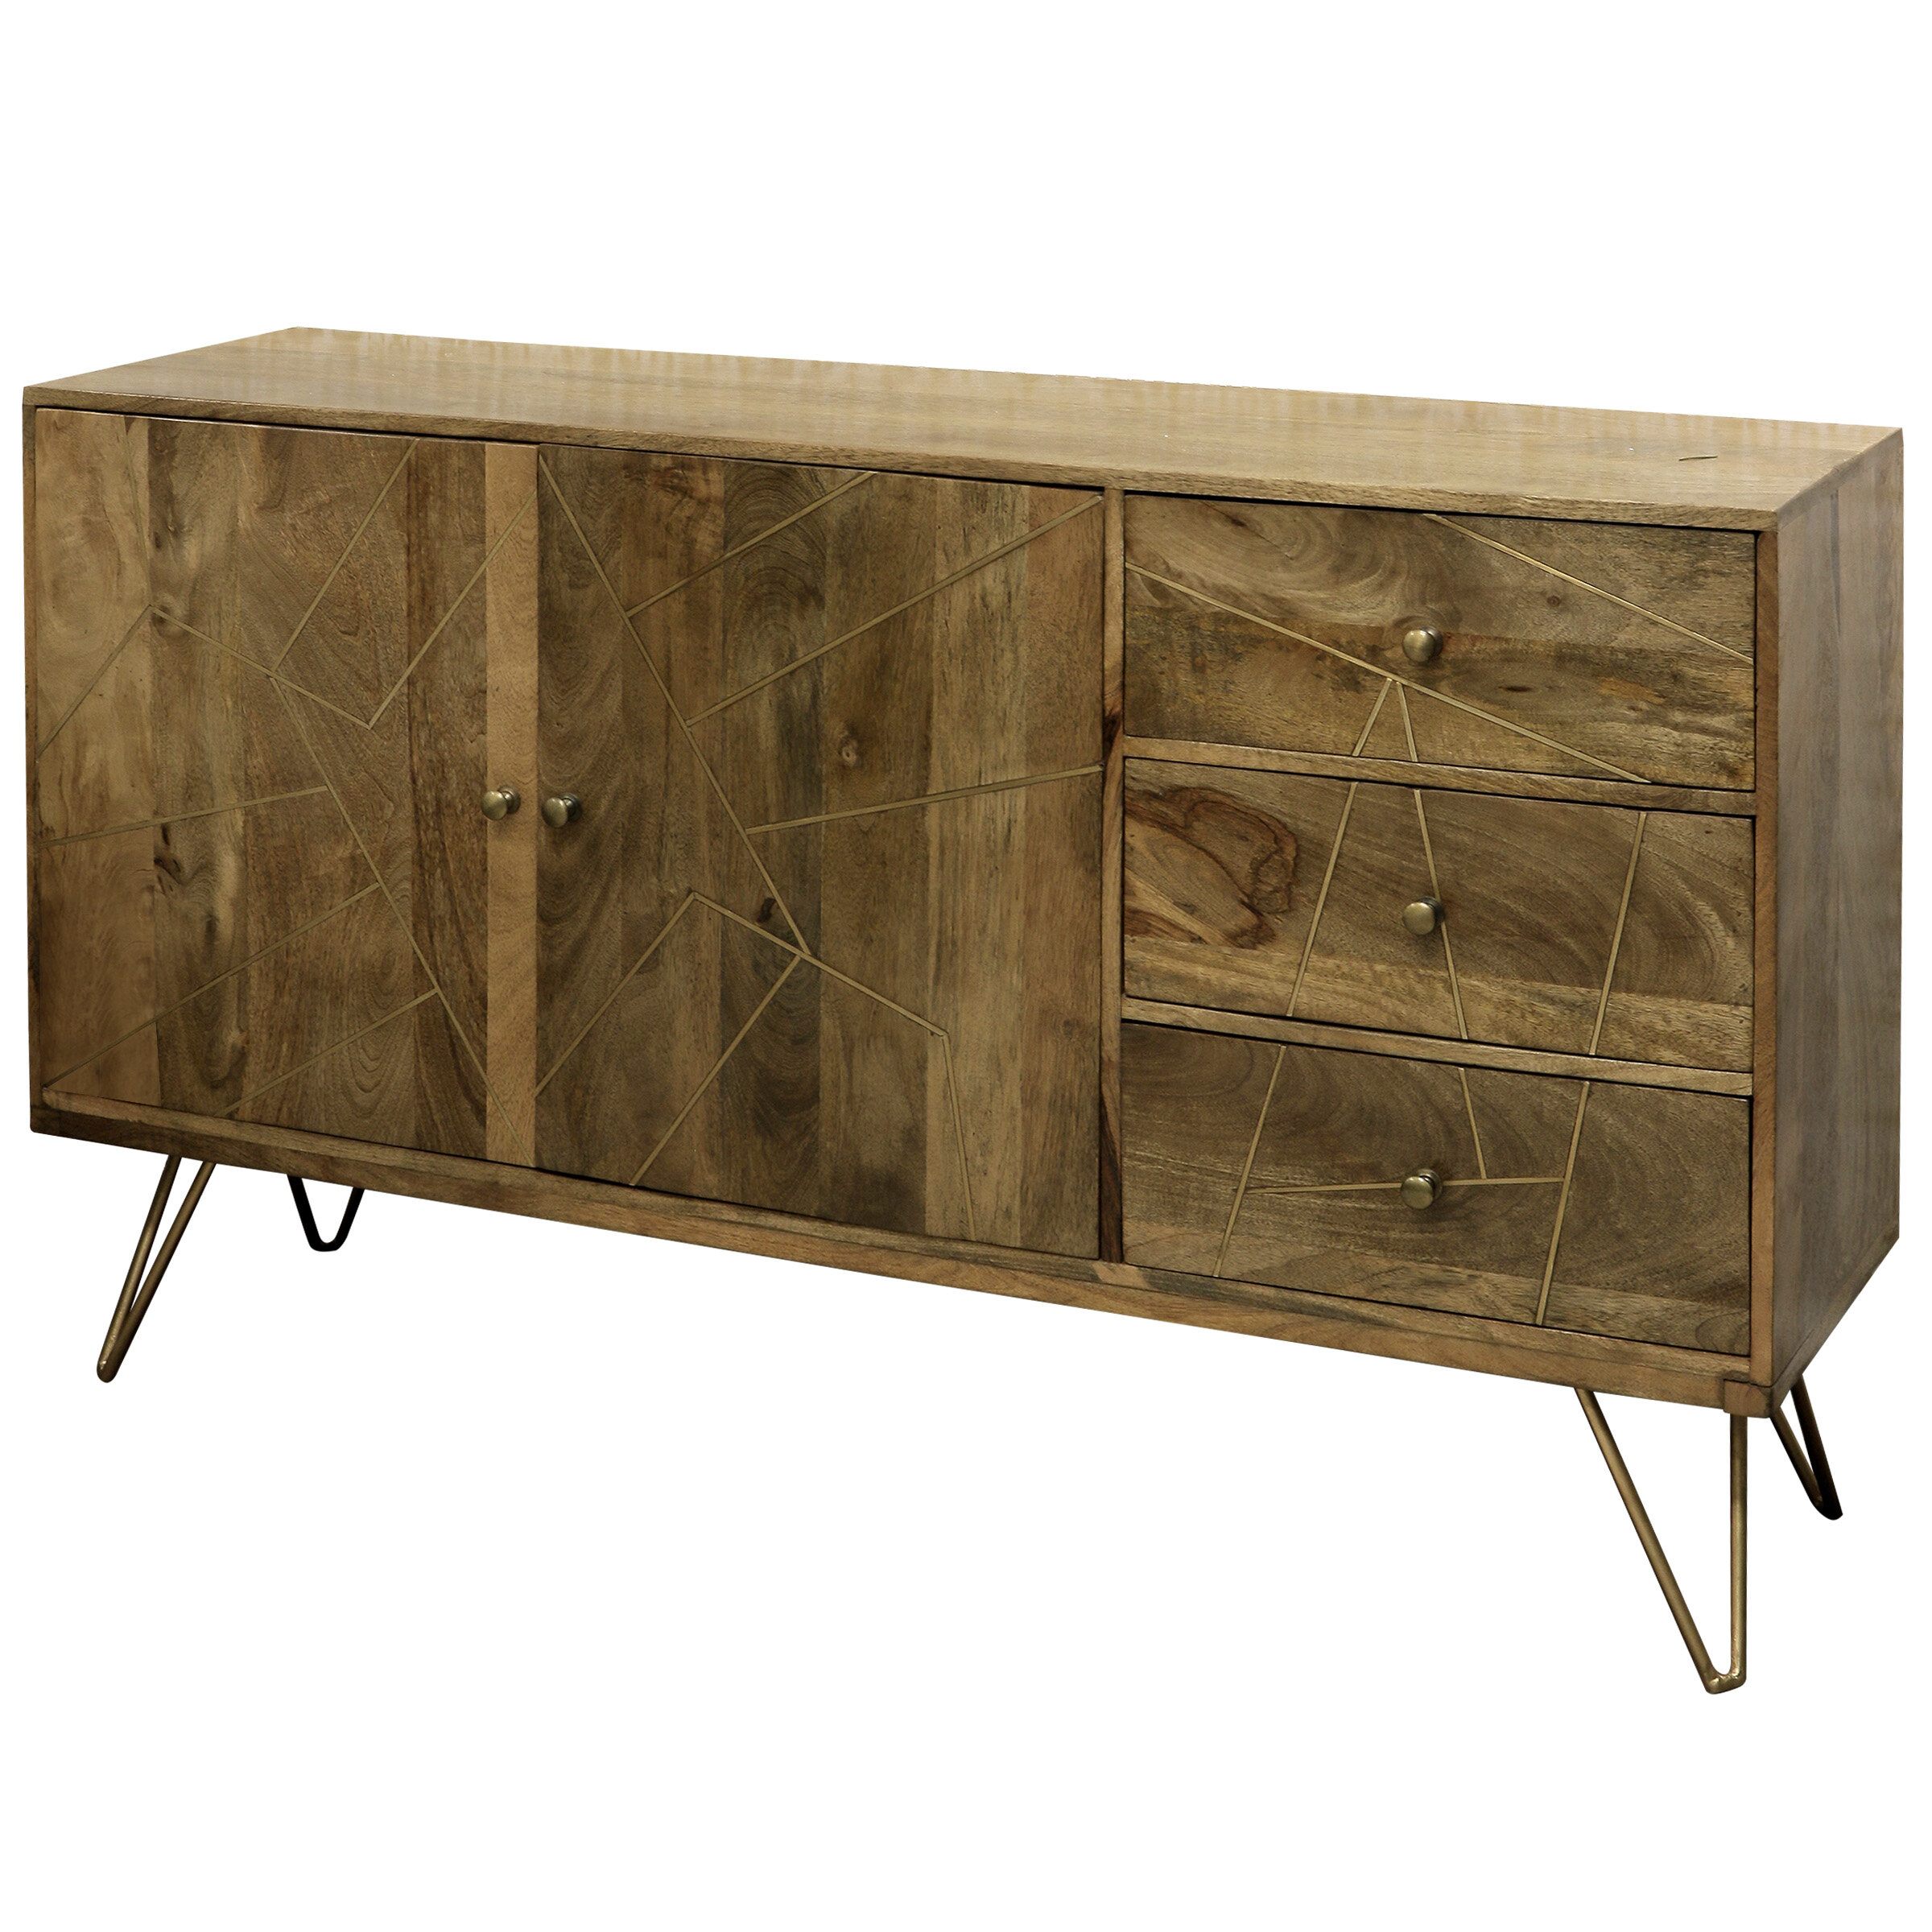 Modern & Contemporary Narrow Credenza | Allmodern within Multi Colored Geometric Shapes Credenzas (Image 24 of 30)